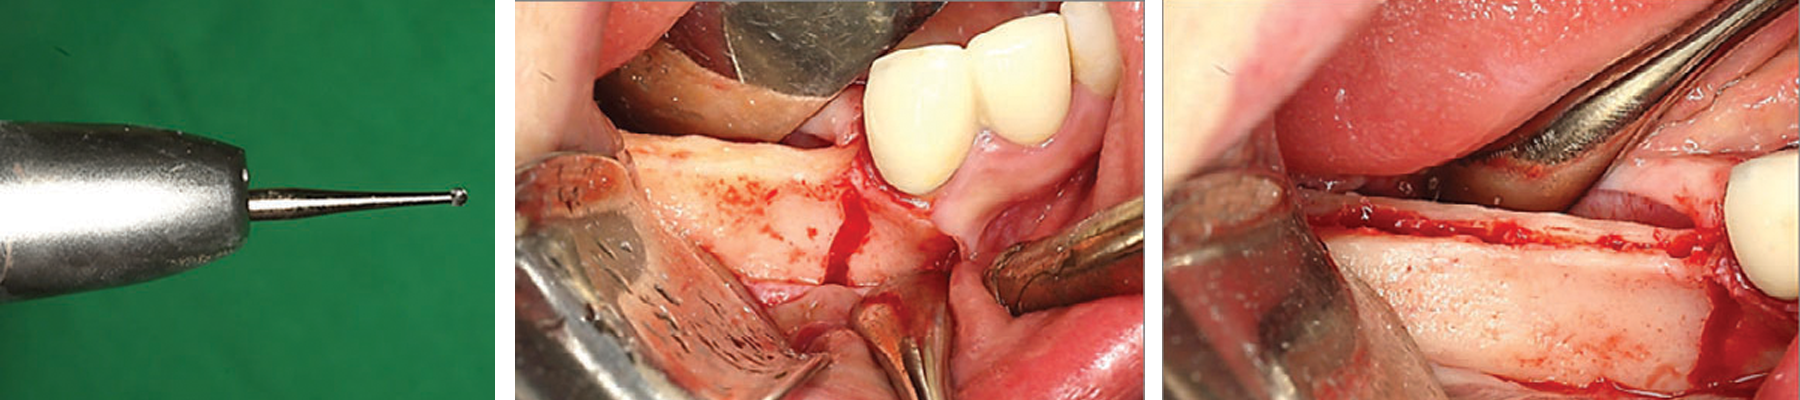 Intra-operative view Full thickness mucoperiosteal flap was elevated with one vertical incision on the mesial side.